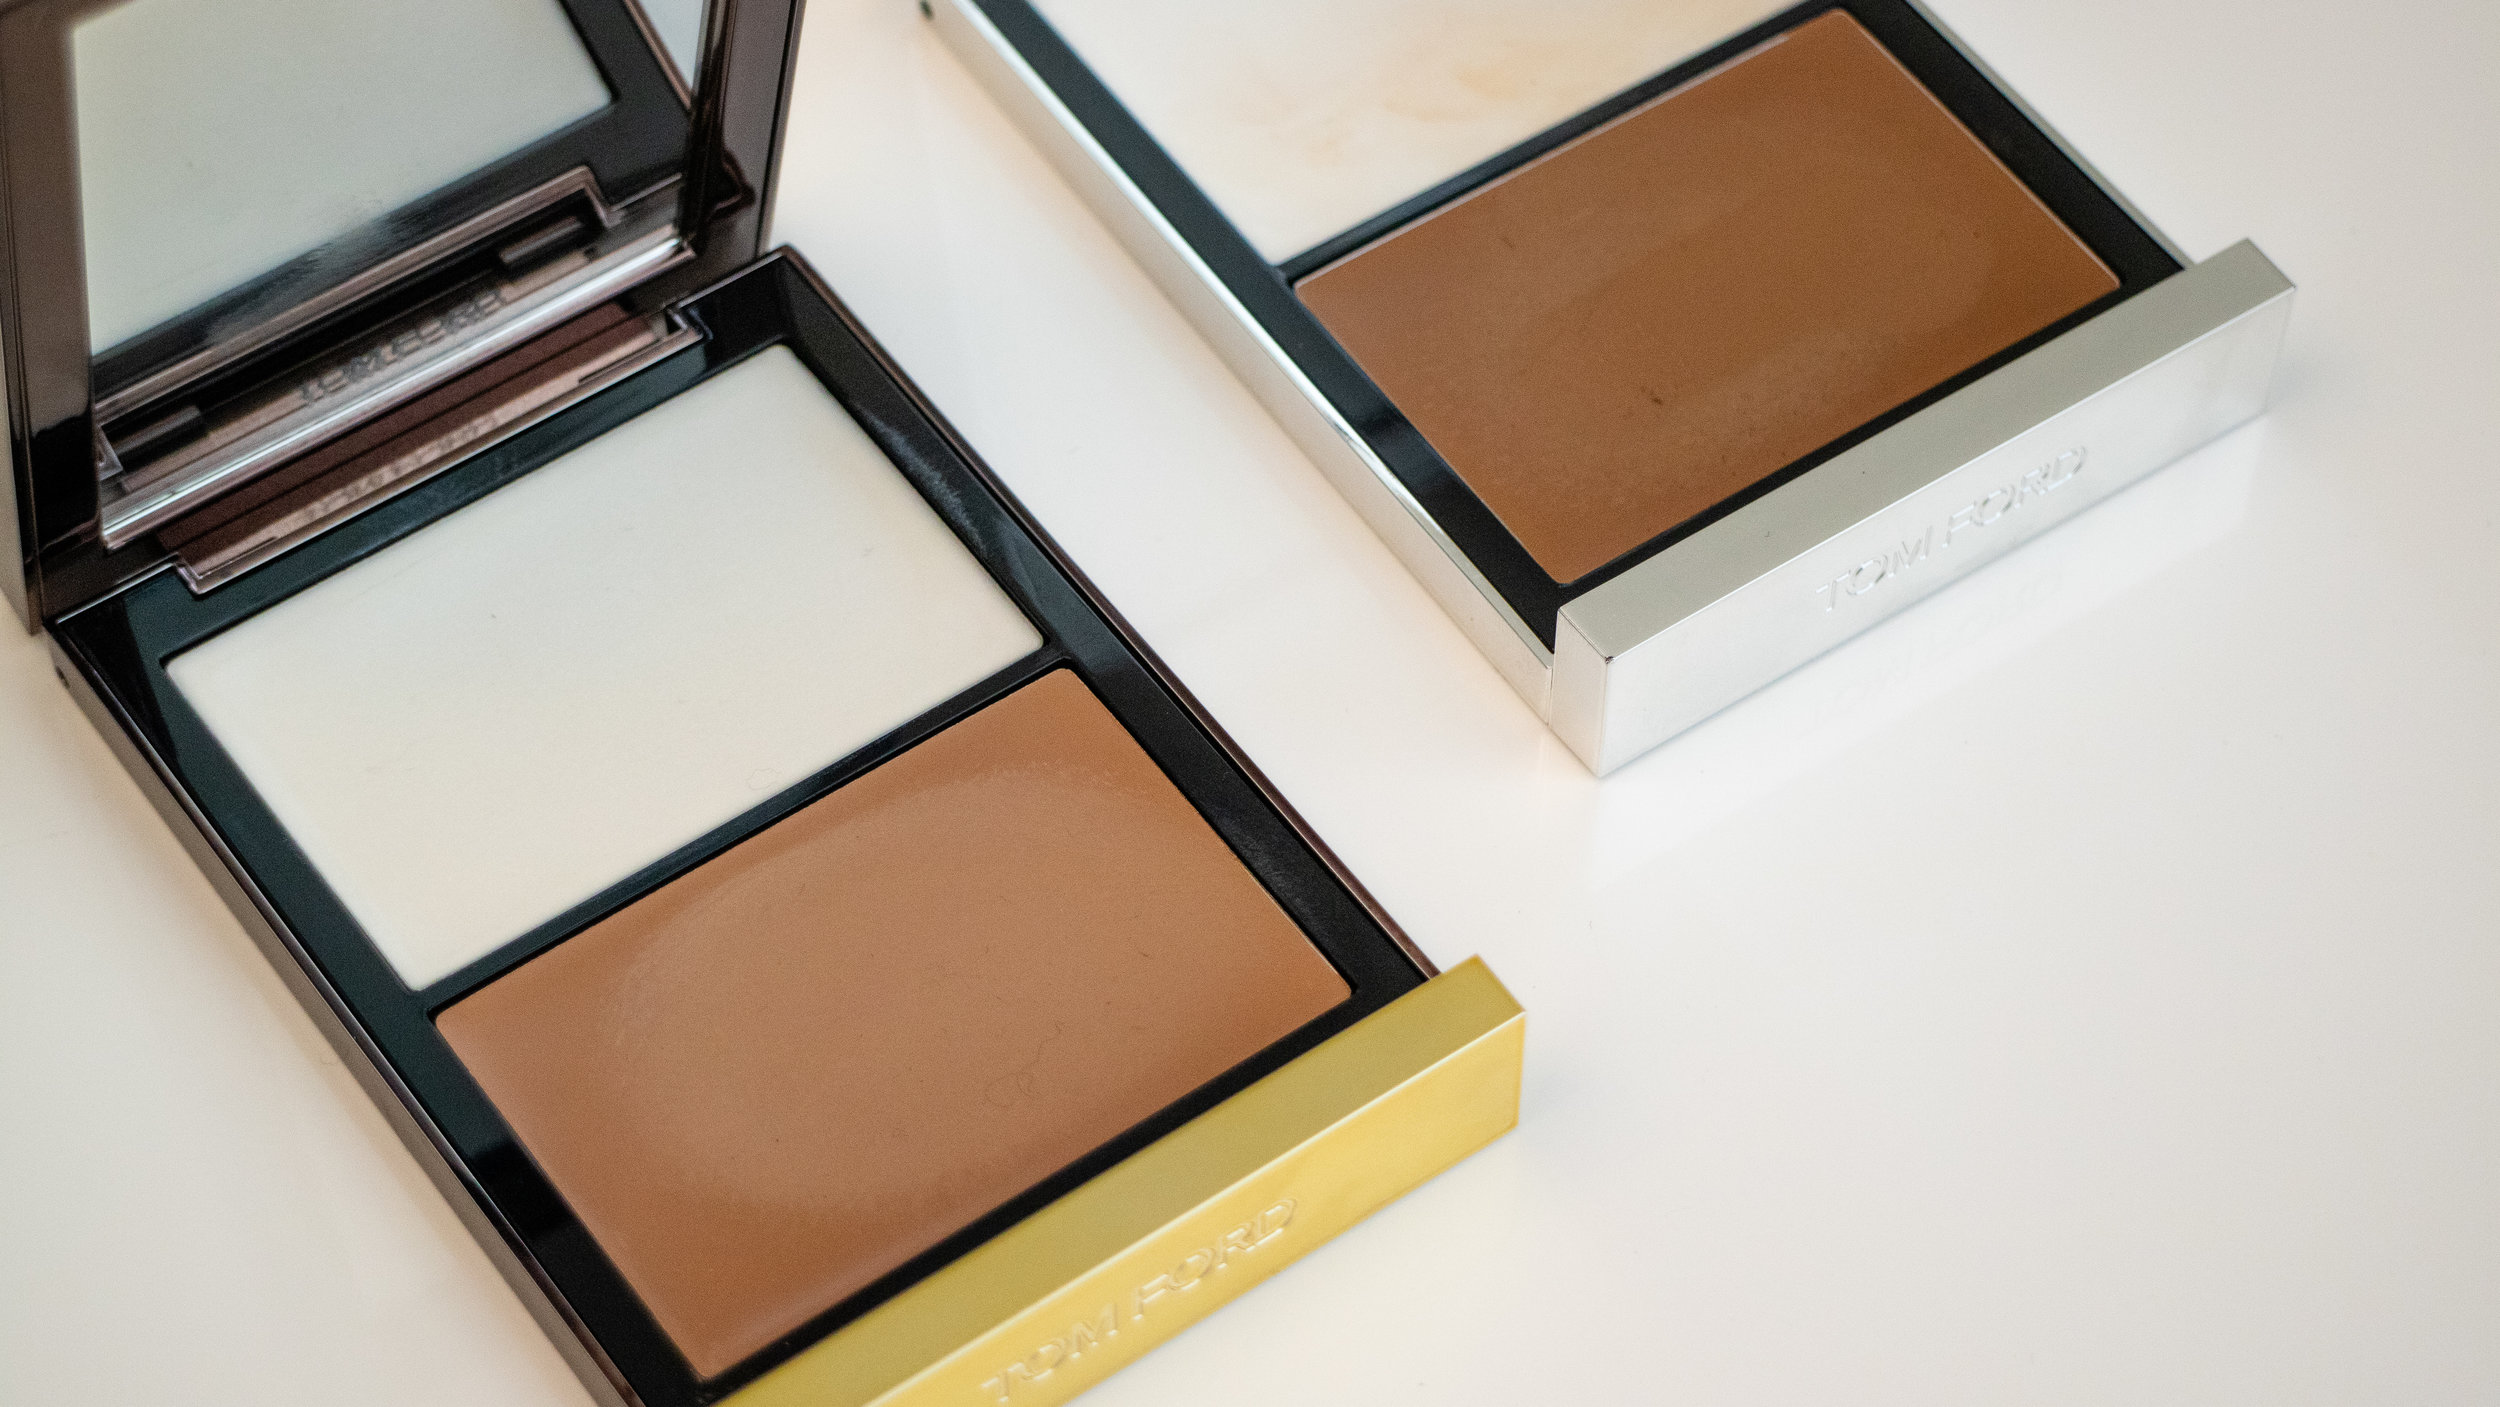 Tom Ford Shade and Illuminate Duo in Intensity 0.5 (L) and 1 (R) .